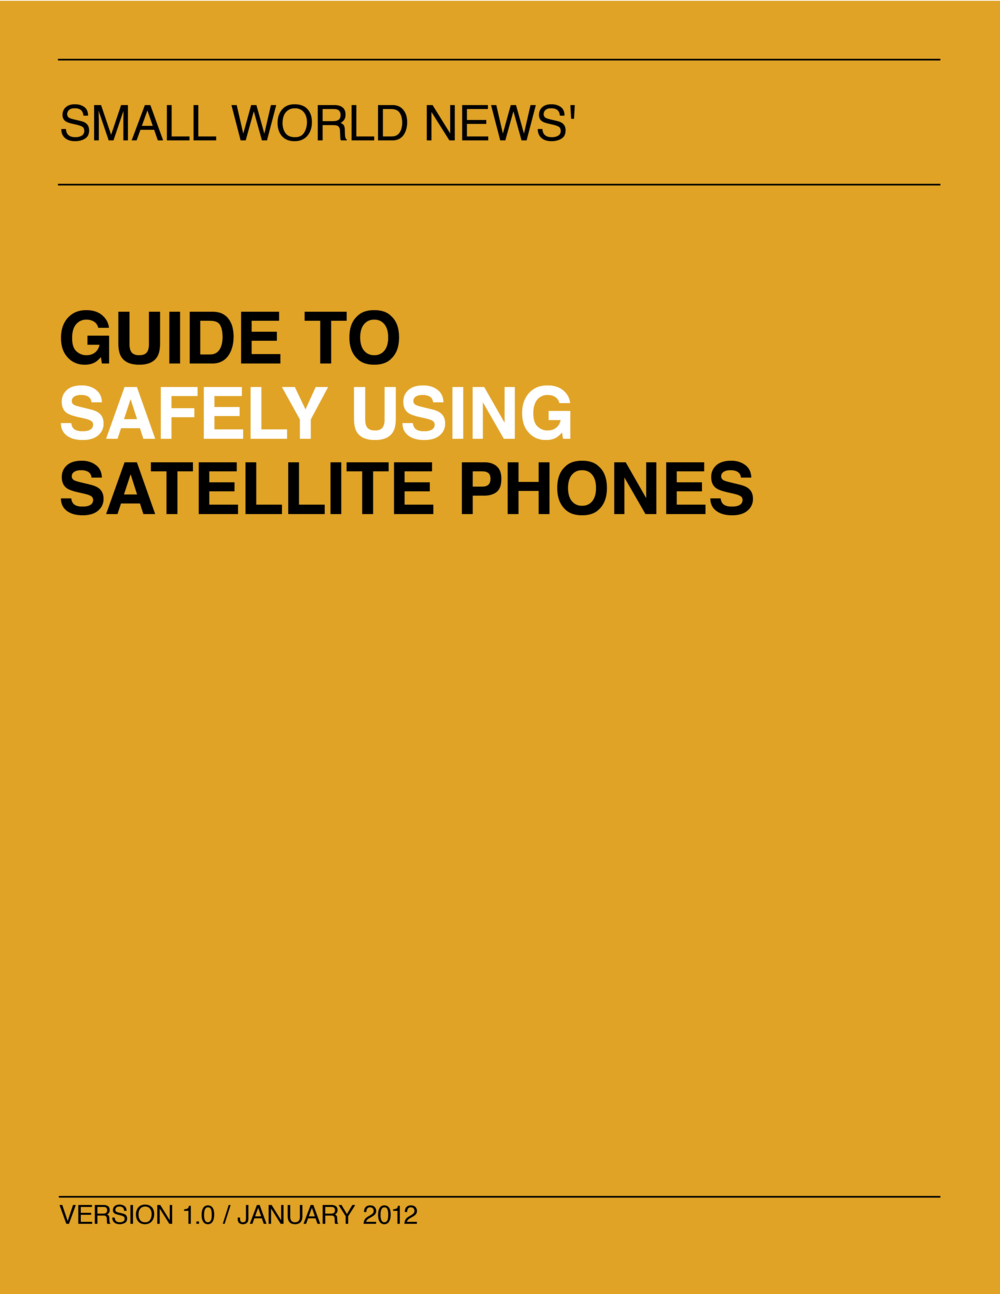 Guide to safely using satellite phones cover